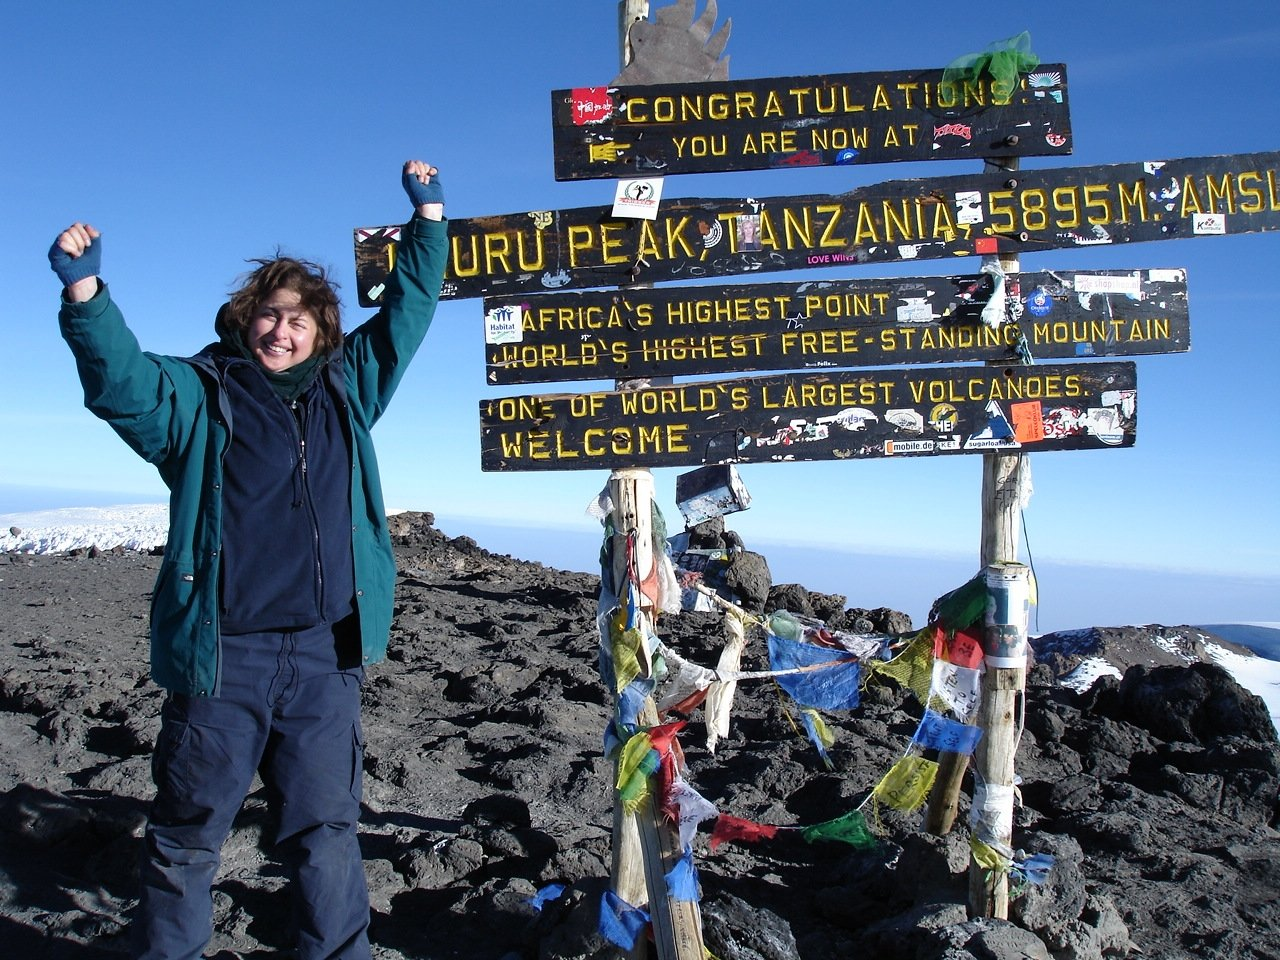 kilimanjaro.JPG - description